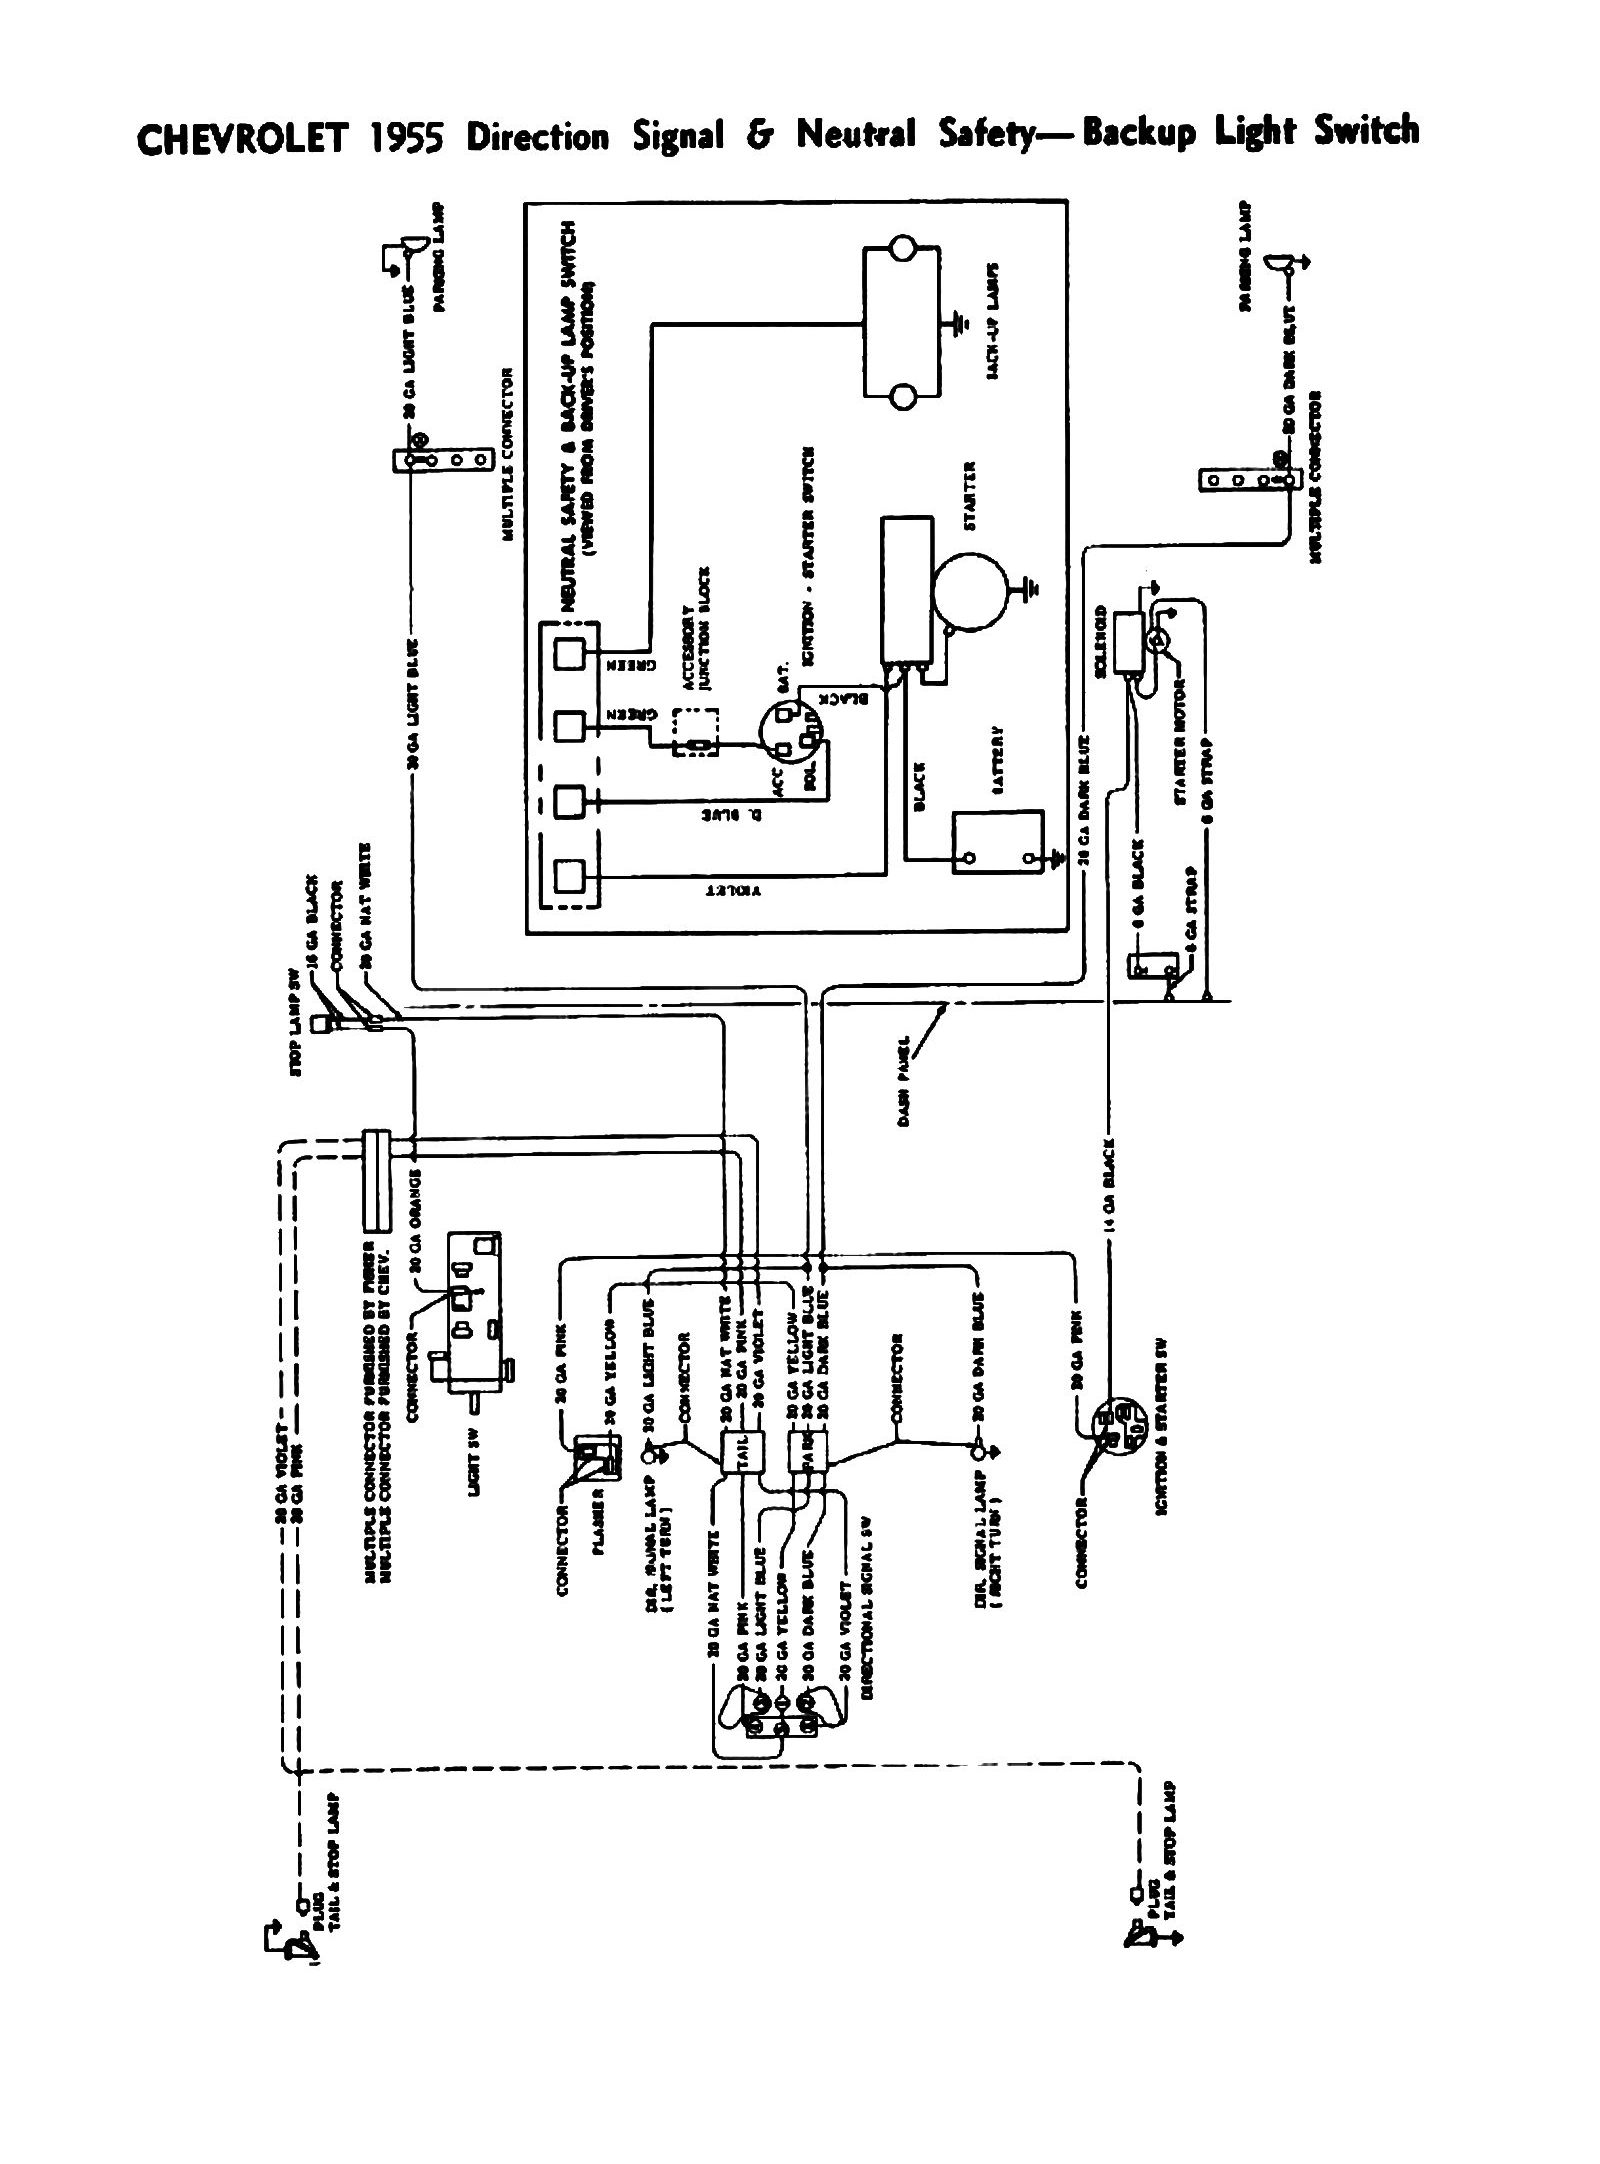 Pickup Truck Inspection Diagram also 7mx8m Chevrolet Silverado Brake Lights Dont Work Changed furthermore 79 El Camino Dash Wiring Diagram Get Free Image in addition 1963 Chevrolet C10 Wiring Diagram likewise Parking Ke Switch Wiring Diagram. on 57 chevy brake light switch wiring diagram